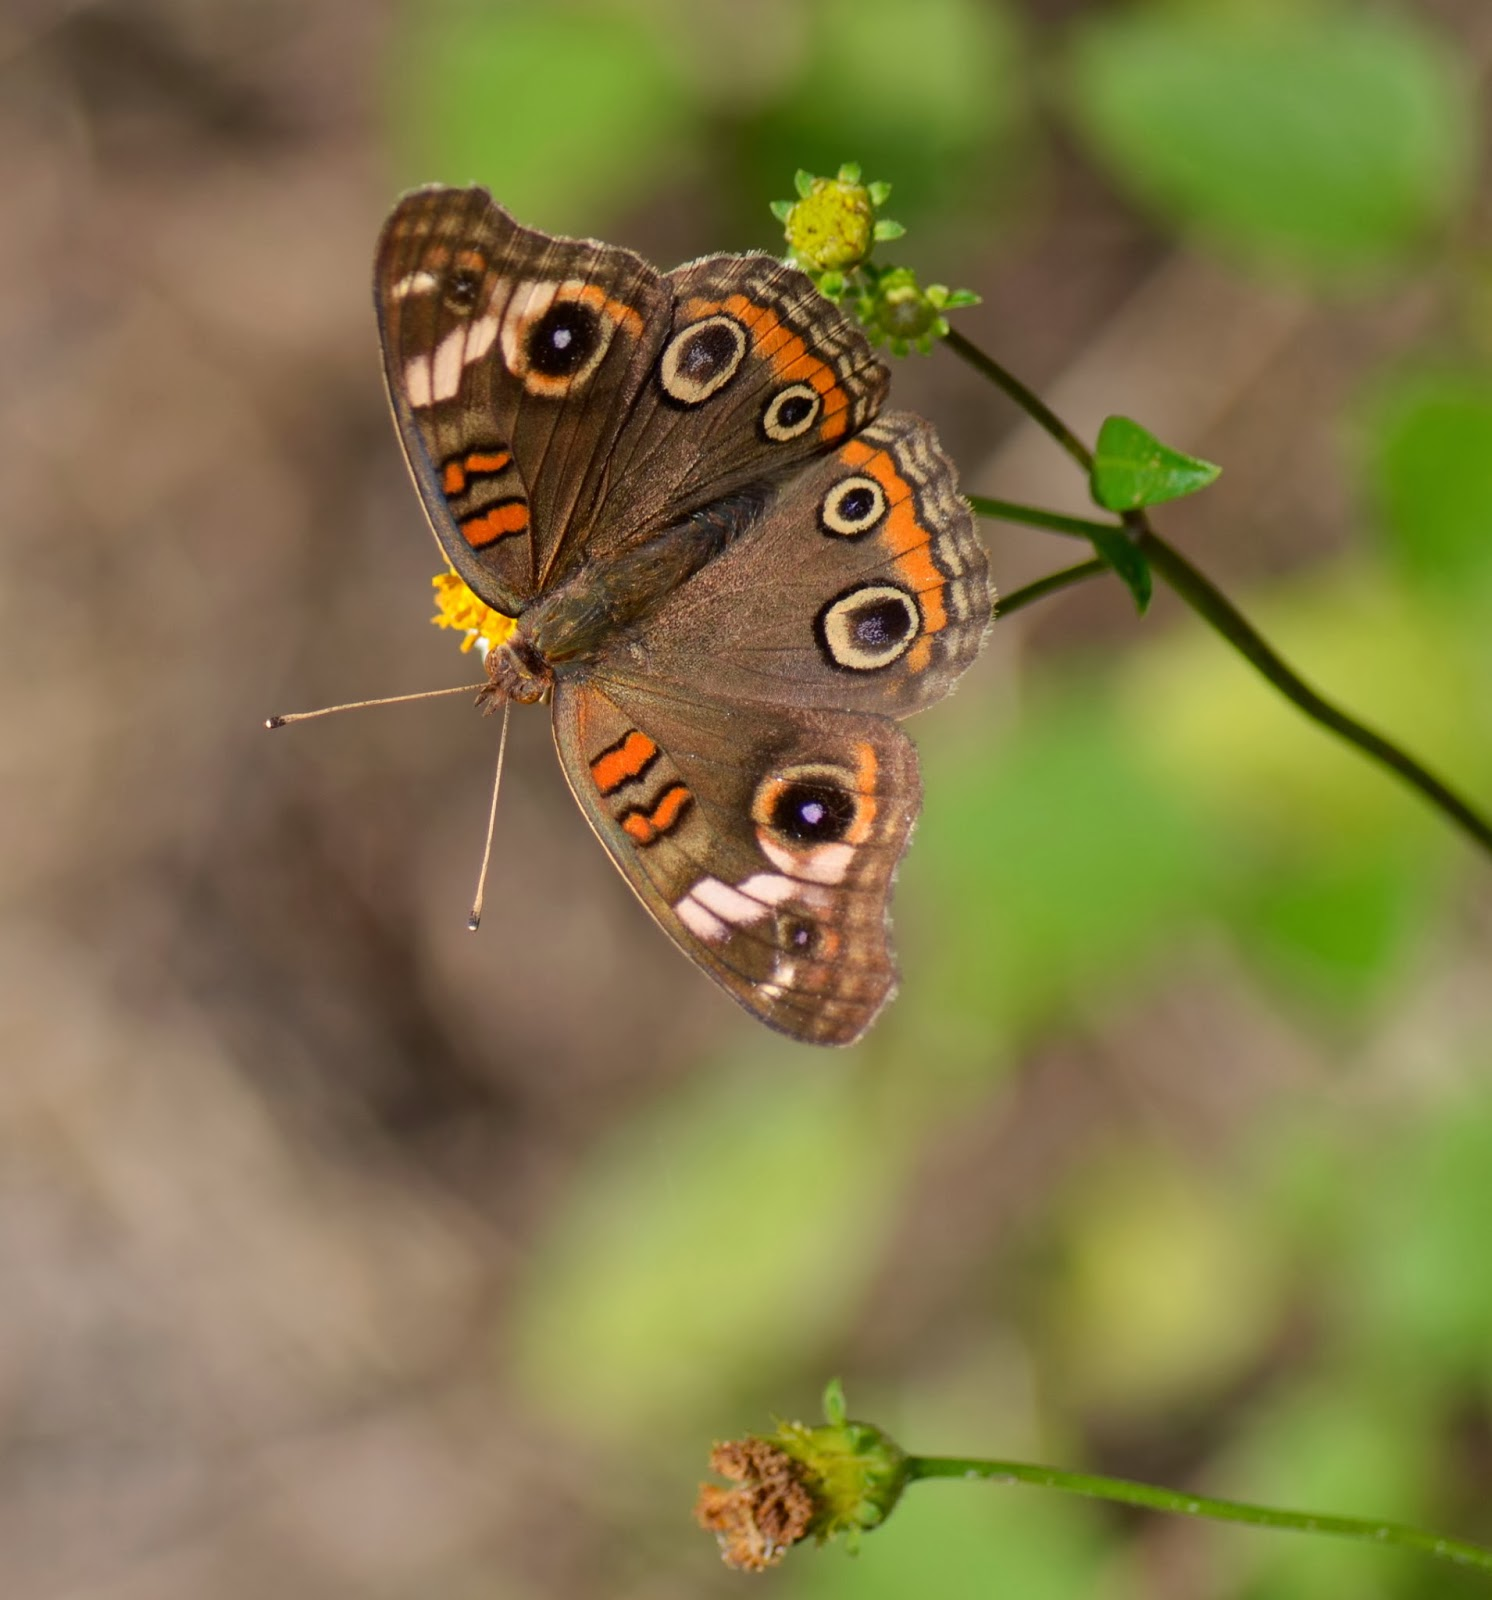 image of Mangrove Buckeye butterfly, Manatee Viewing Center, Apollo Beach, FL